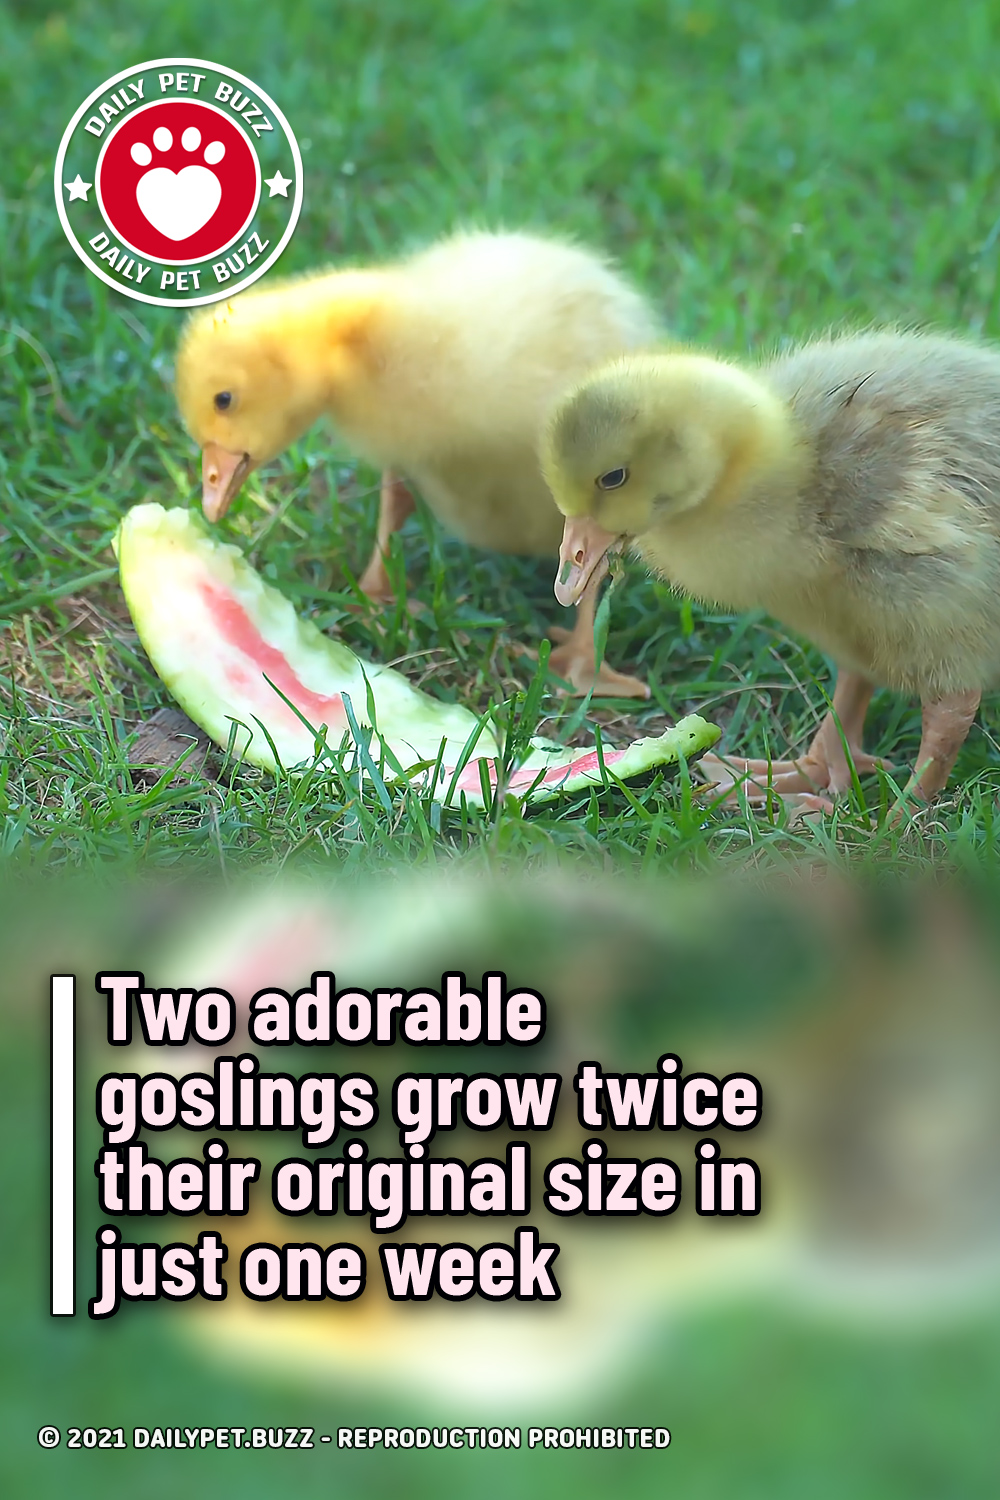 Two adorable goslings grow twice their original size in just one week